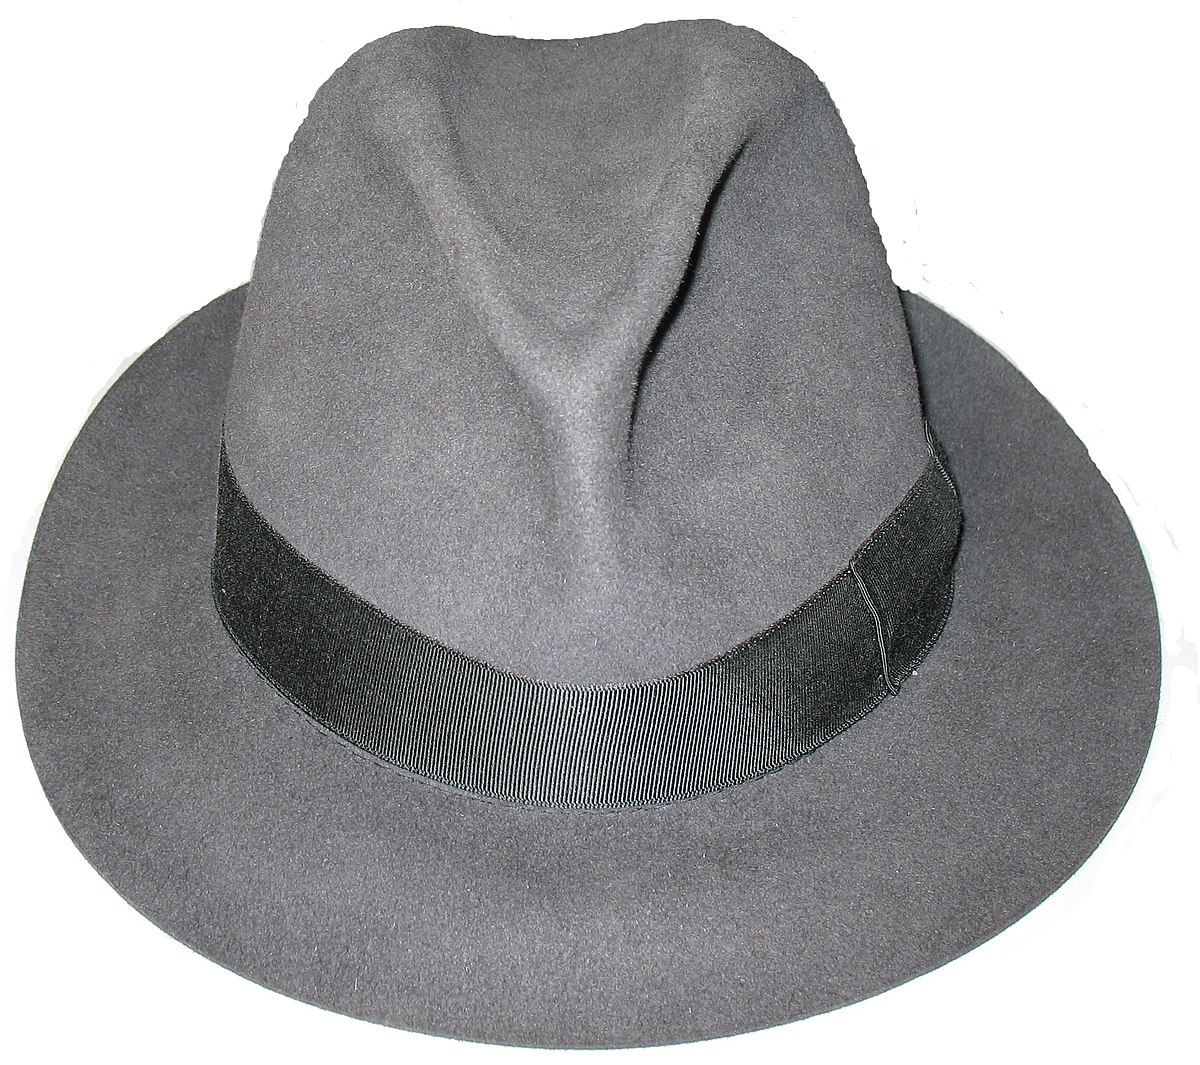 597cd5413d0 Fedora - Wikipedia